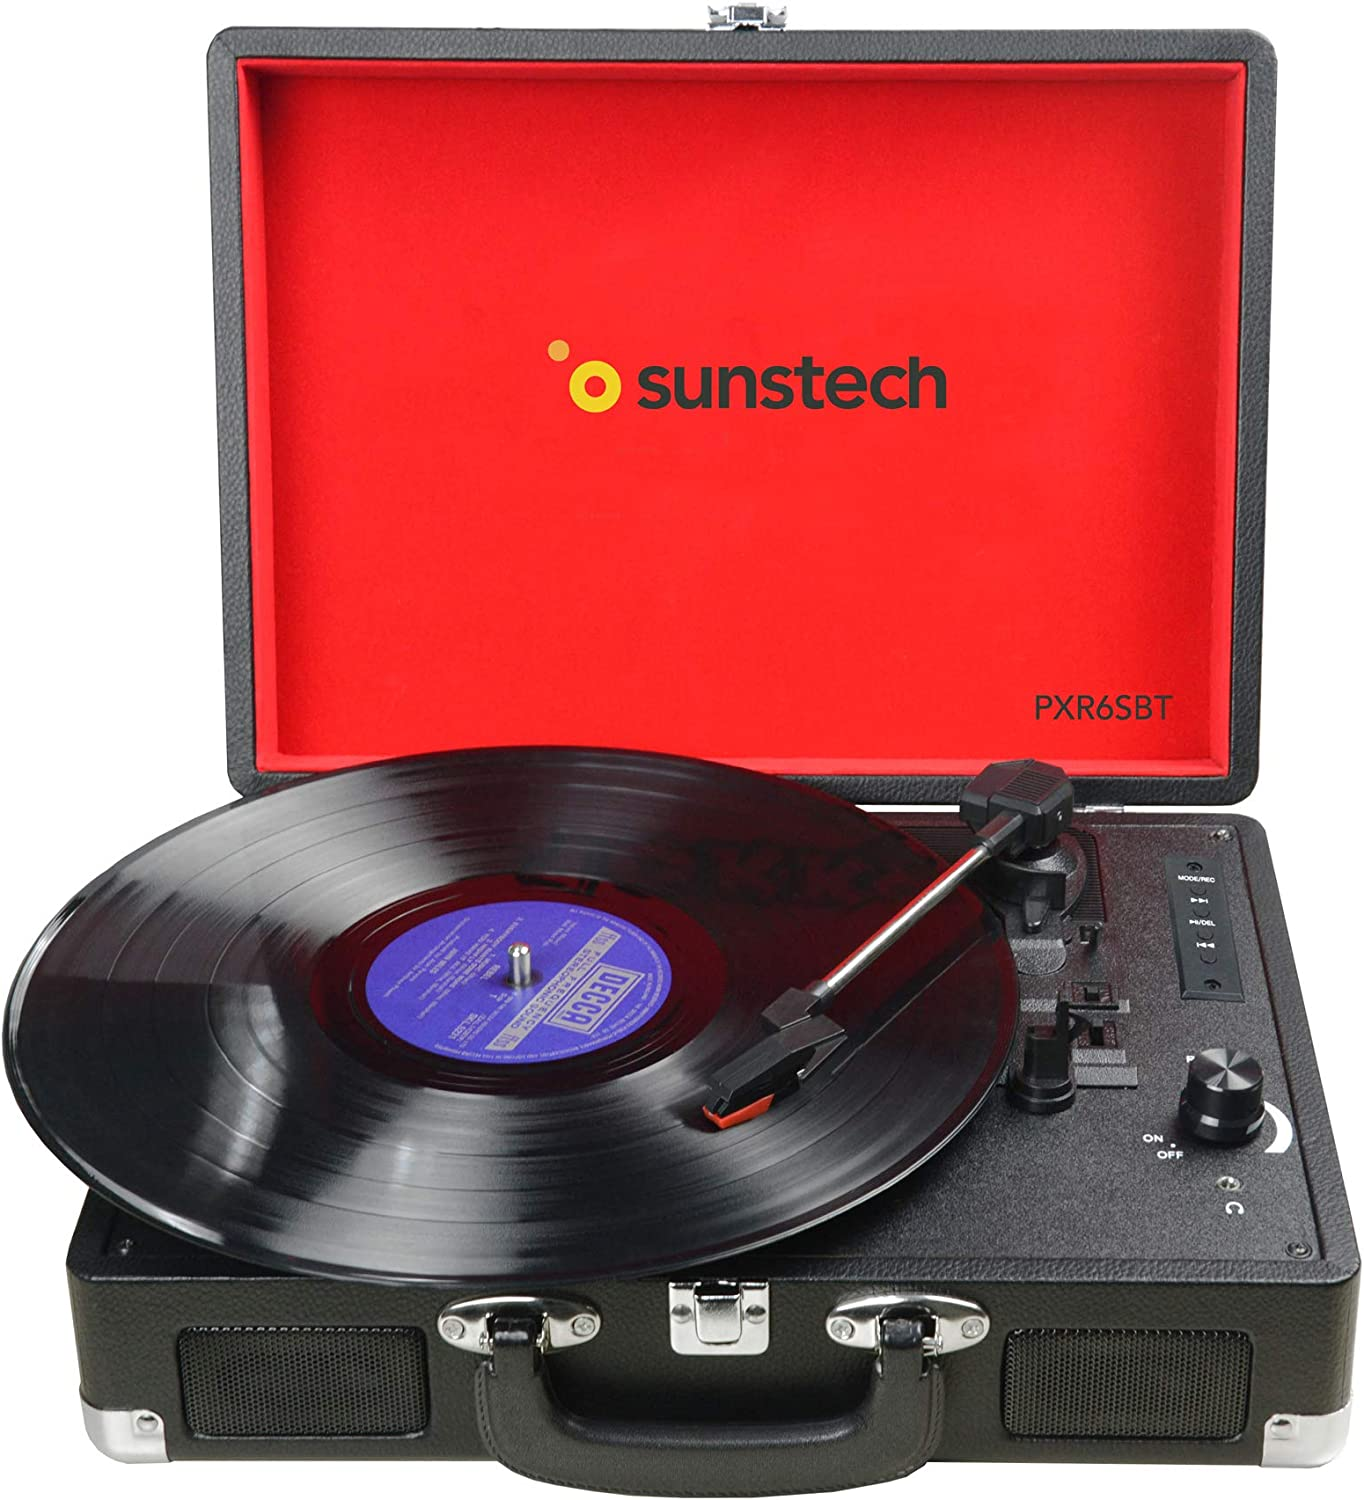 Sunstech PXR6SBTBK - Giradiscos portátil (Bluetooth, USB, MP3) 33/45/78 RPM, Maleta Portátil con 2 Altavoces Integrados, Grabador de Vinilo a MP3, USB Reproductor MP3, Entrada AUX y RCA, Negro.